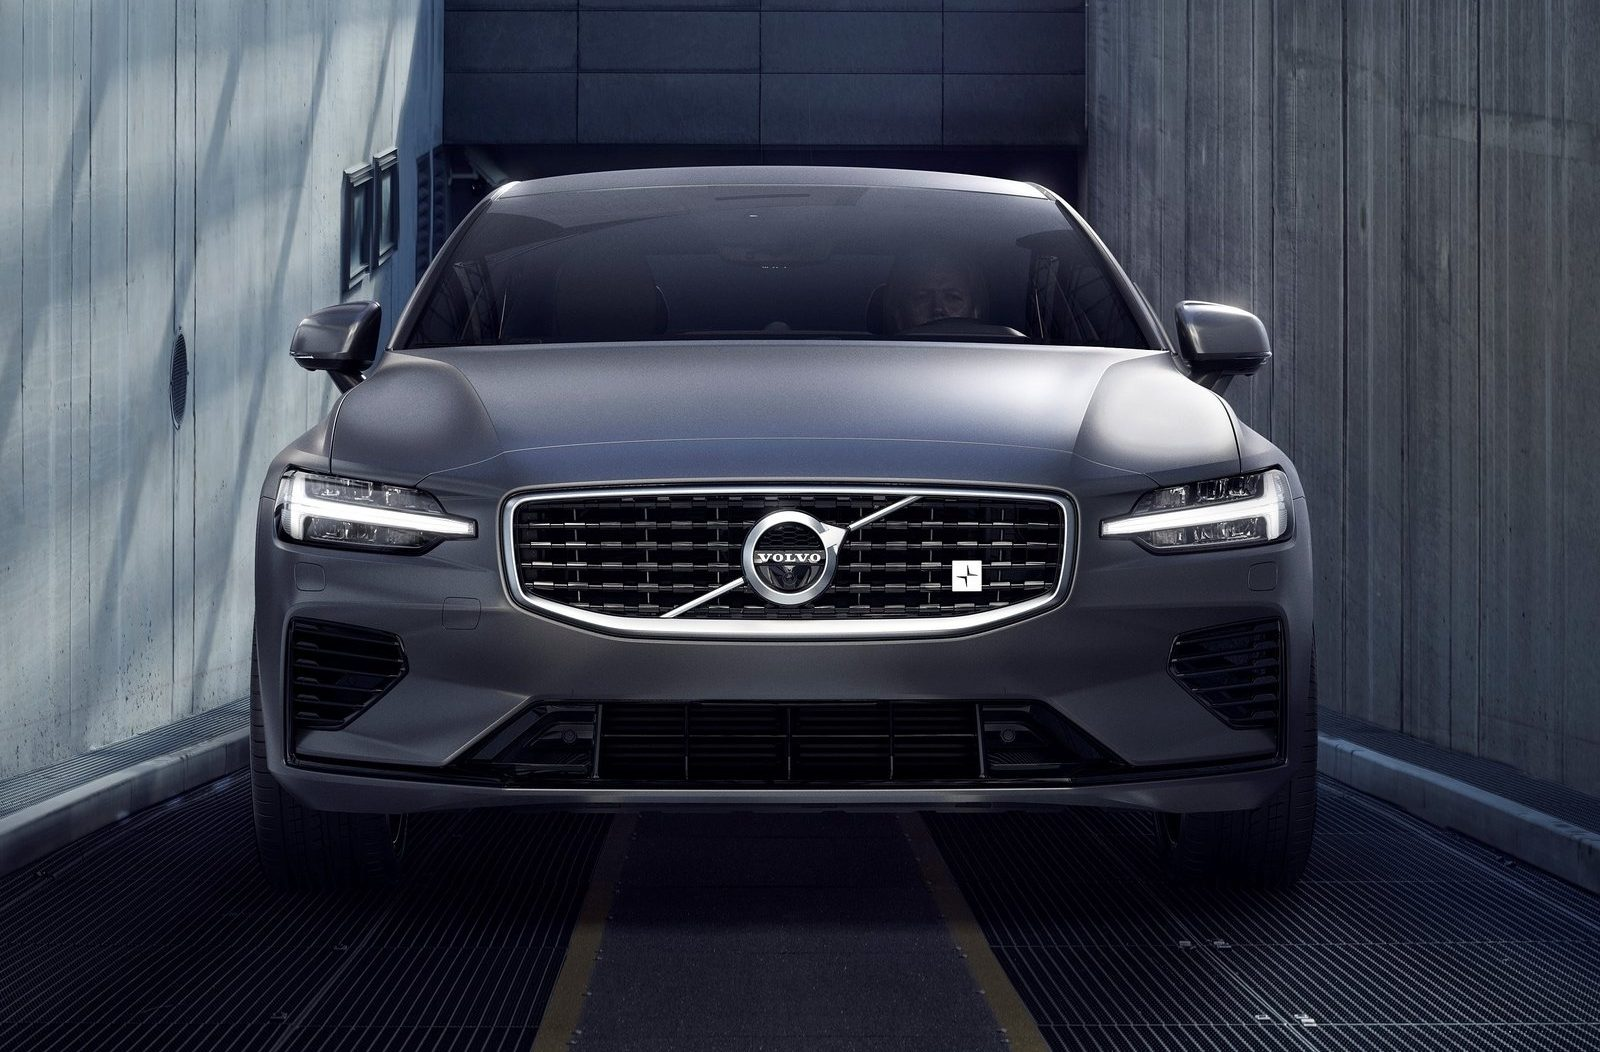 De Nieuwe Volvo Xc60 >> Volvo S60 T8 Twin Engine Polestar Engineered oogt dik!